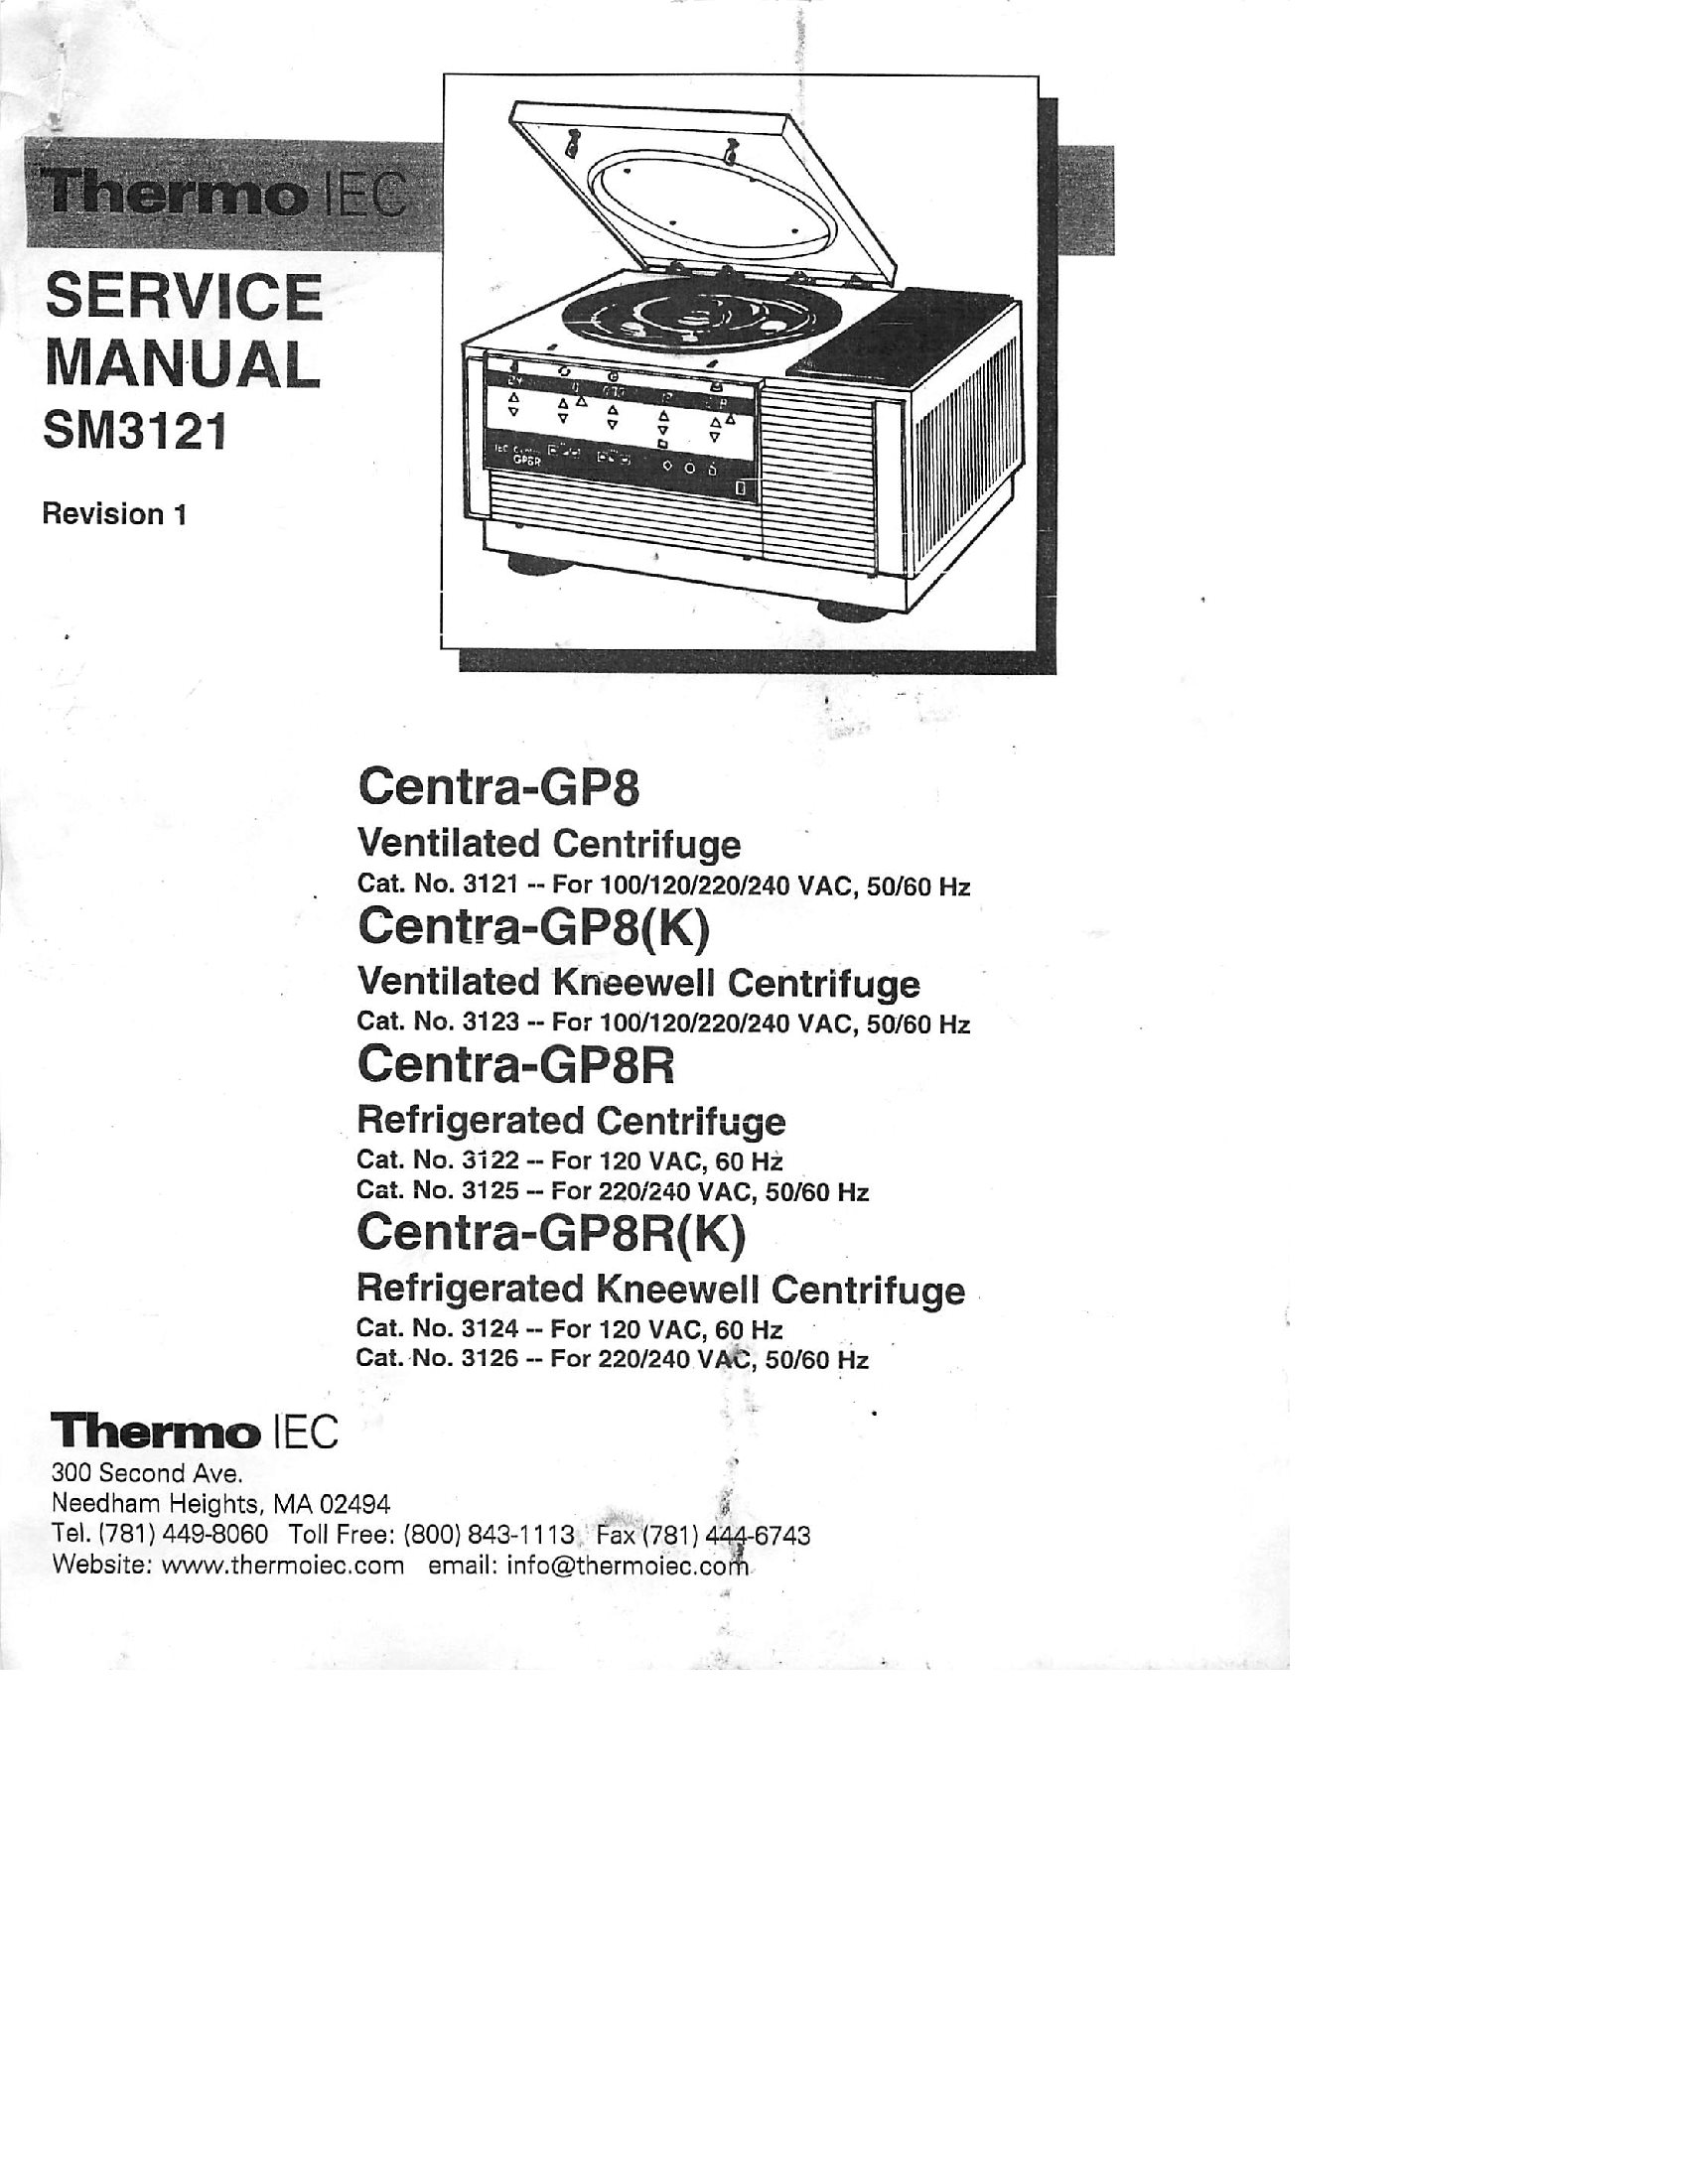 Thermo IEC Centra GB8 User and service manual